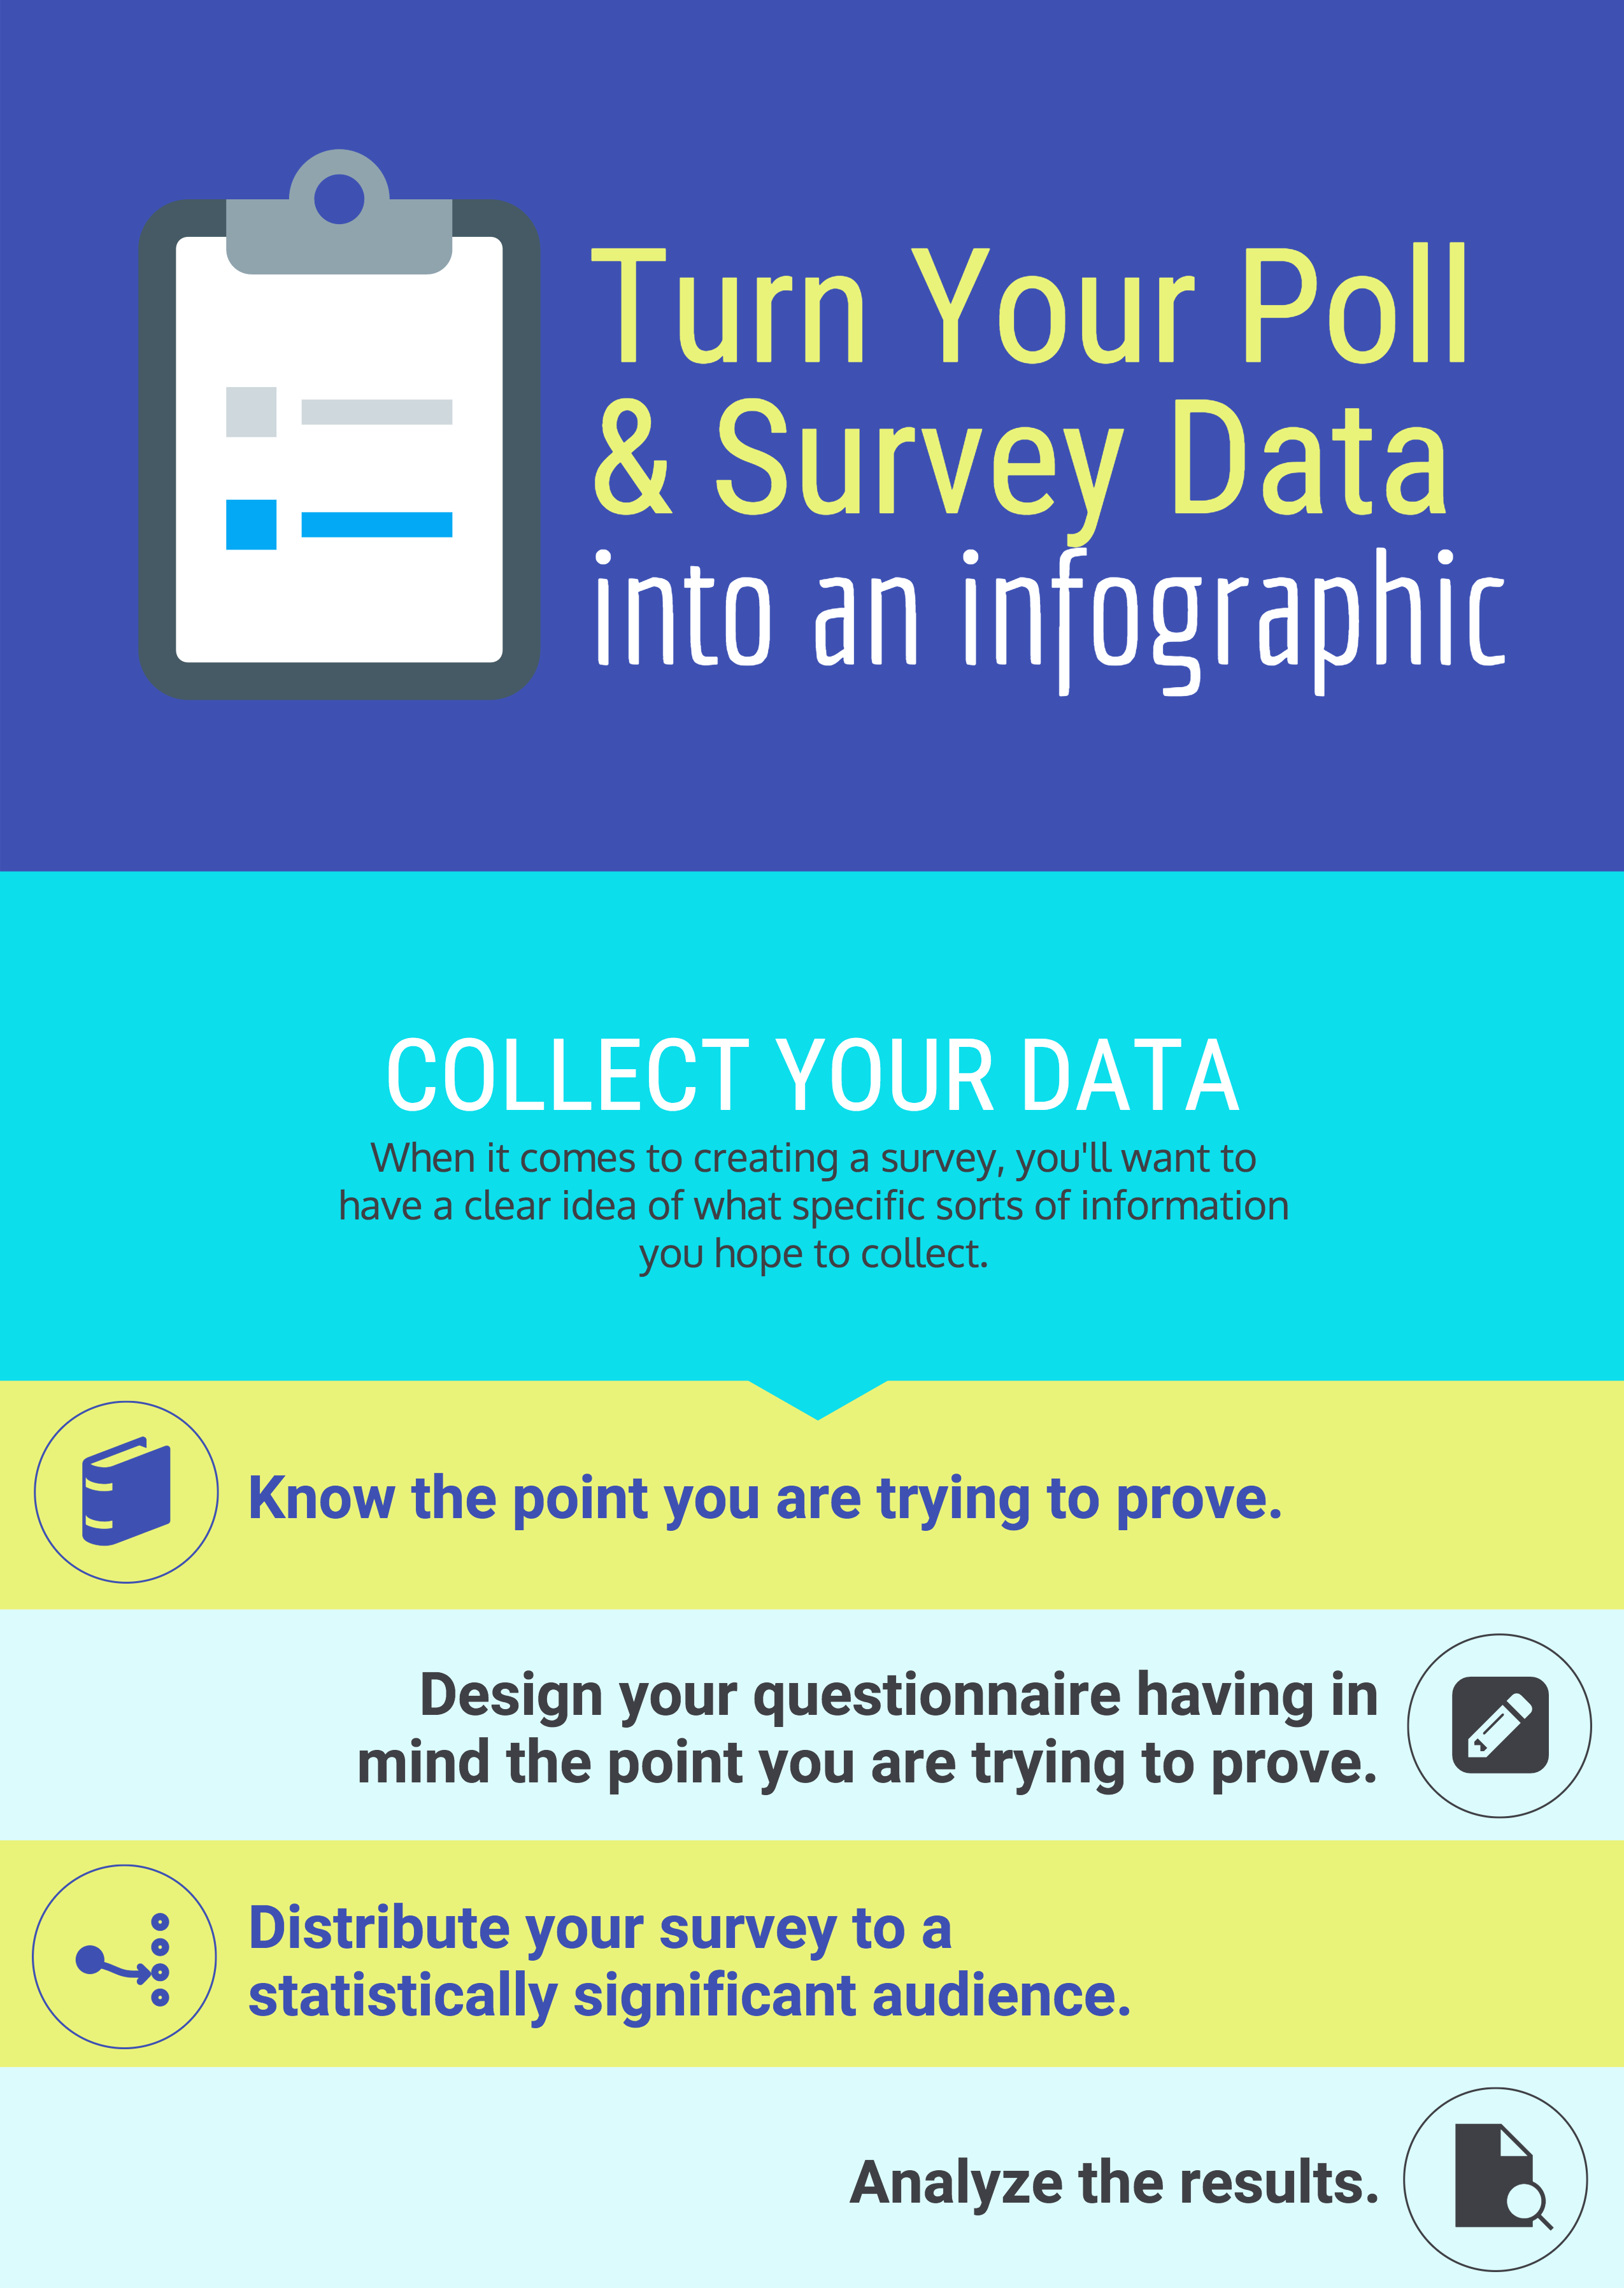 Informational Infographic Template